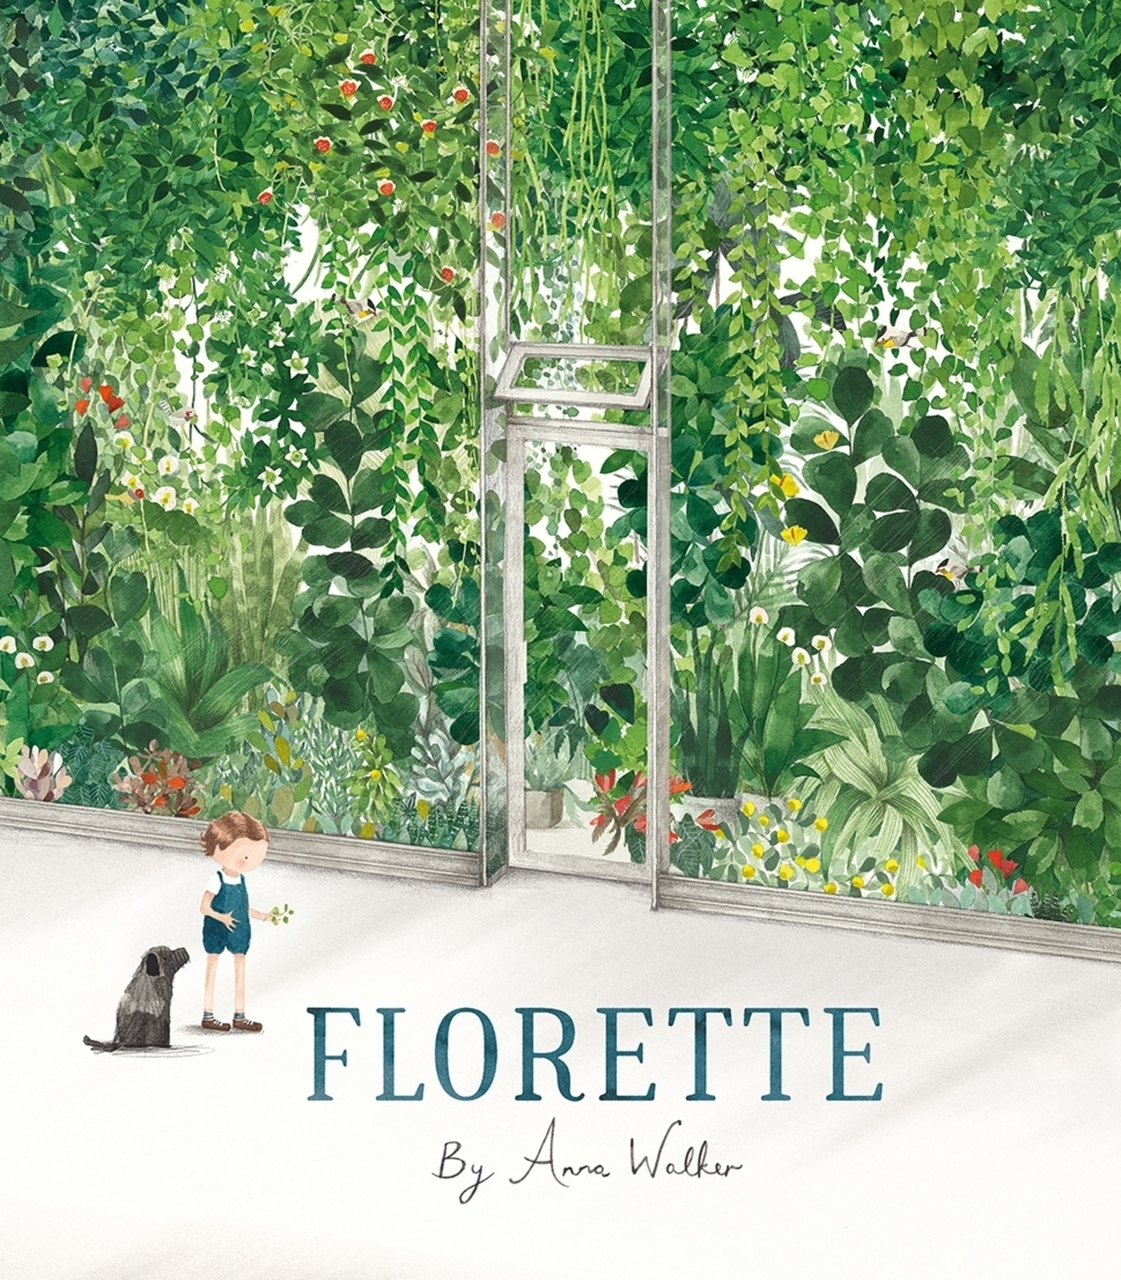 Florette by Anna Walker, ISBN: 9780670079414